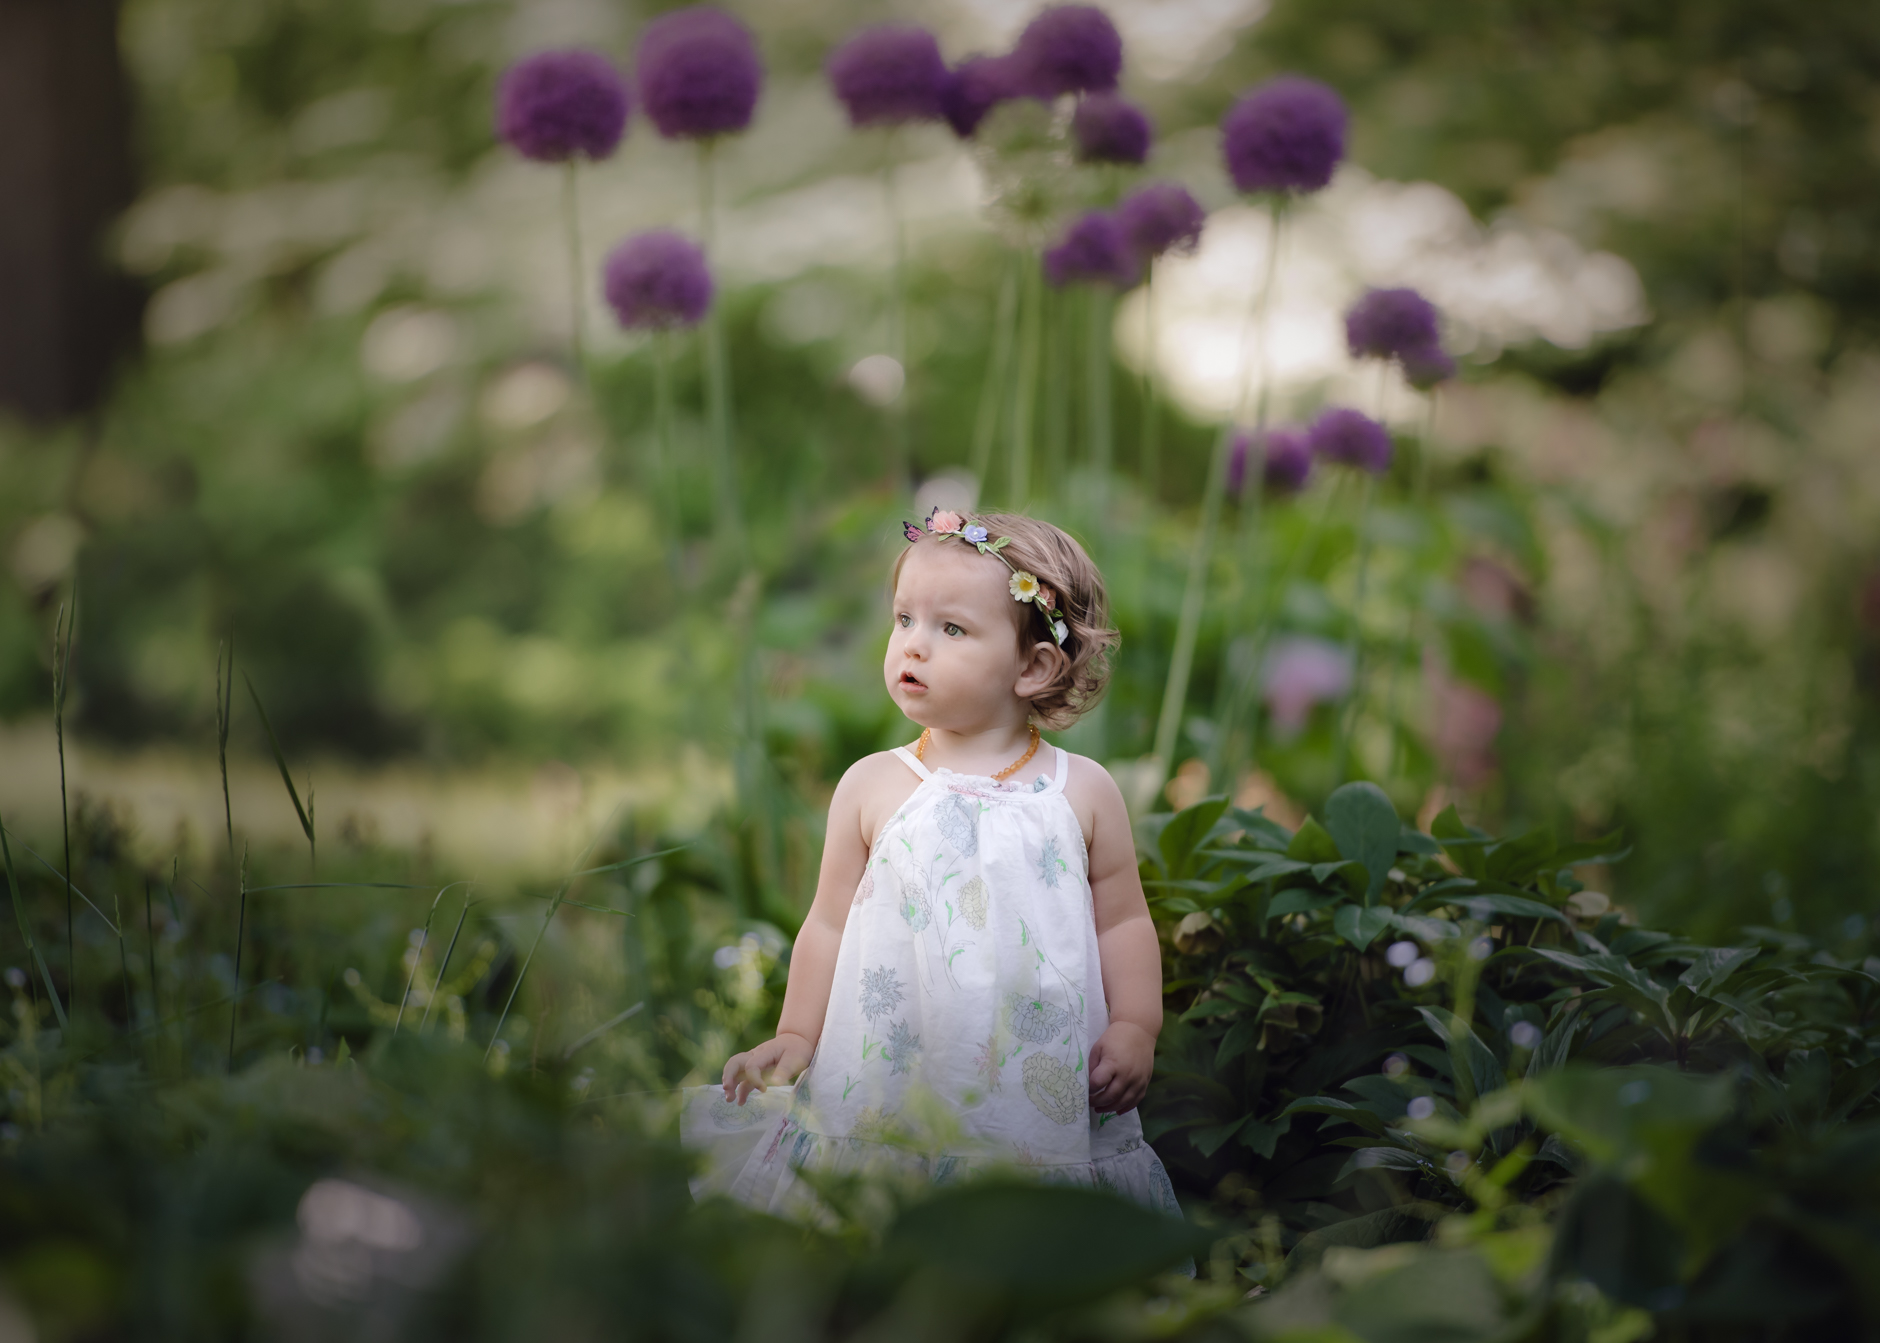 St-louis-child-photographer-Botanical-gardens-photoshoot-vanessa-smith-photography (3 of 11)